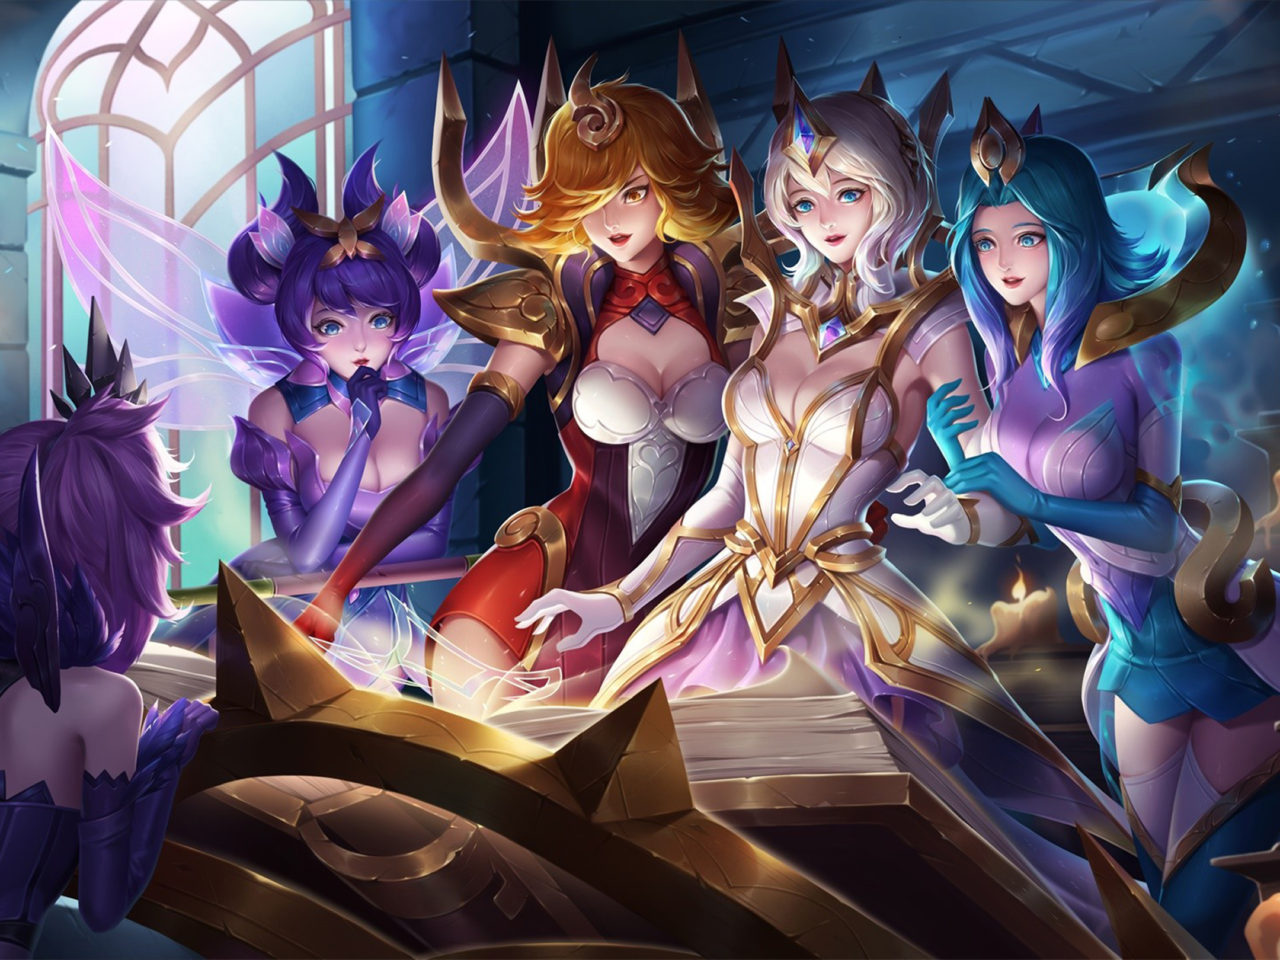 4k Christmas Wallpaper Iphone X Elementalist Lux Skin Video Game League Of Angel Fan Art